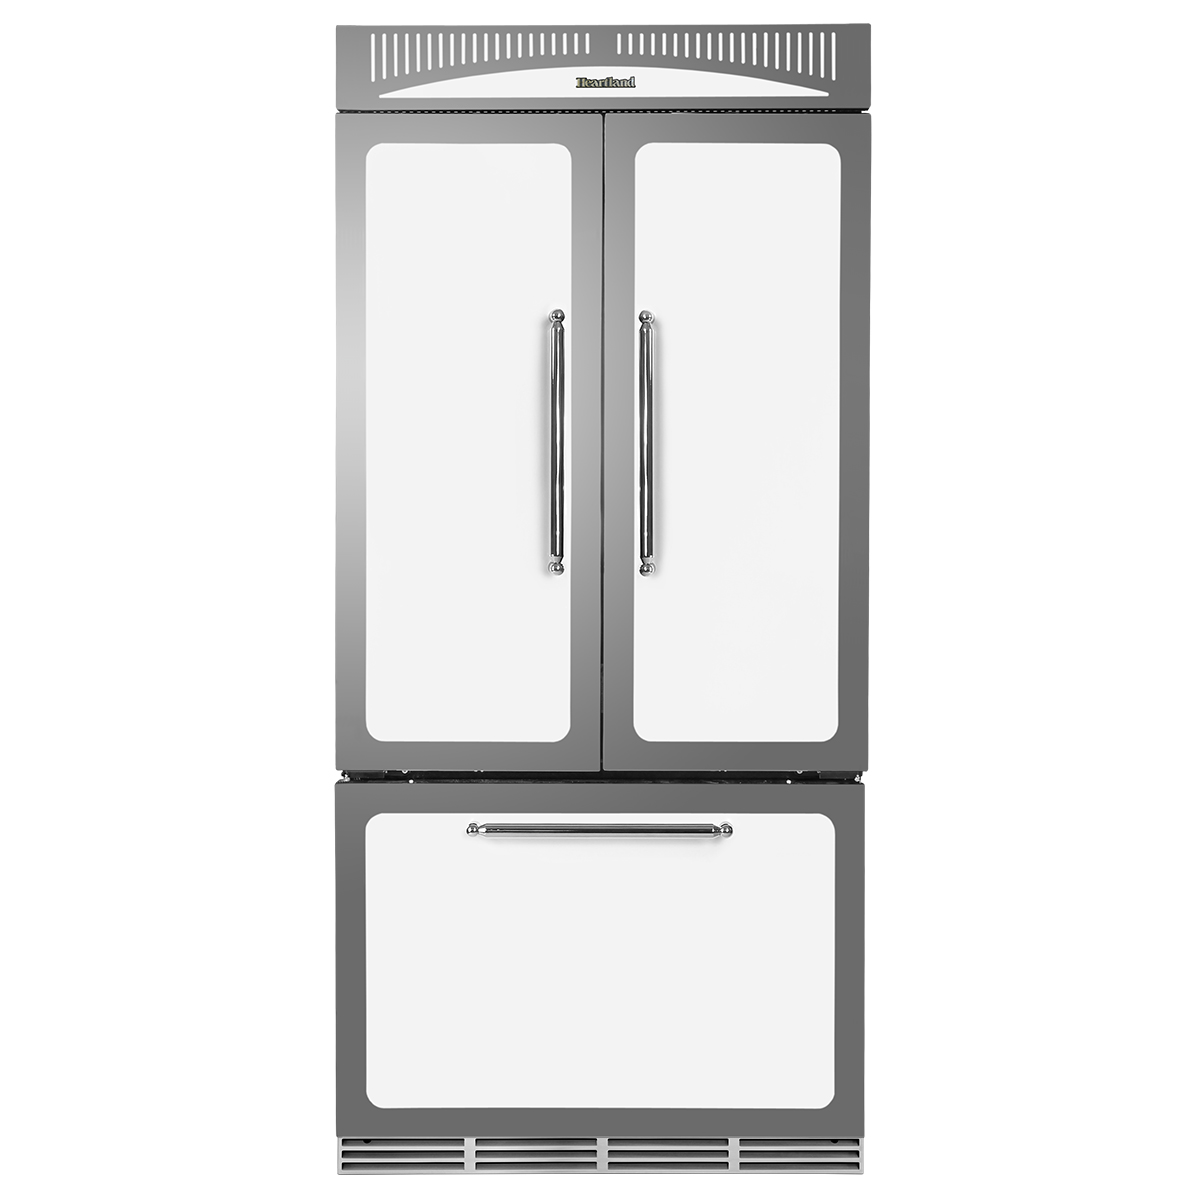 Heartland Classic French Door Refrigerator - White